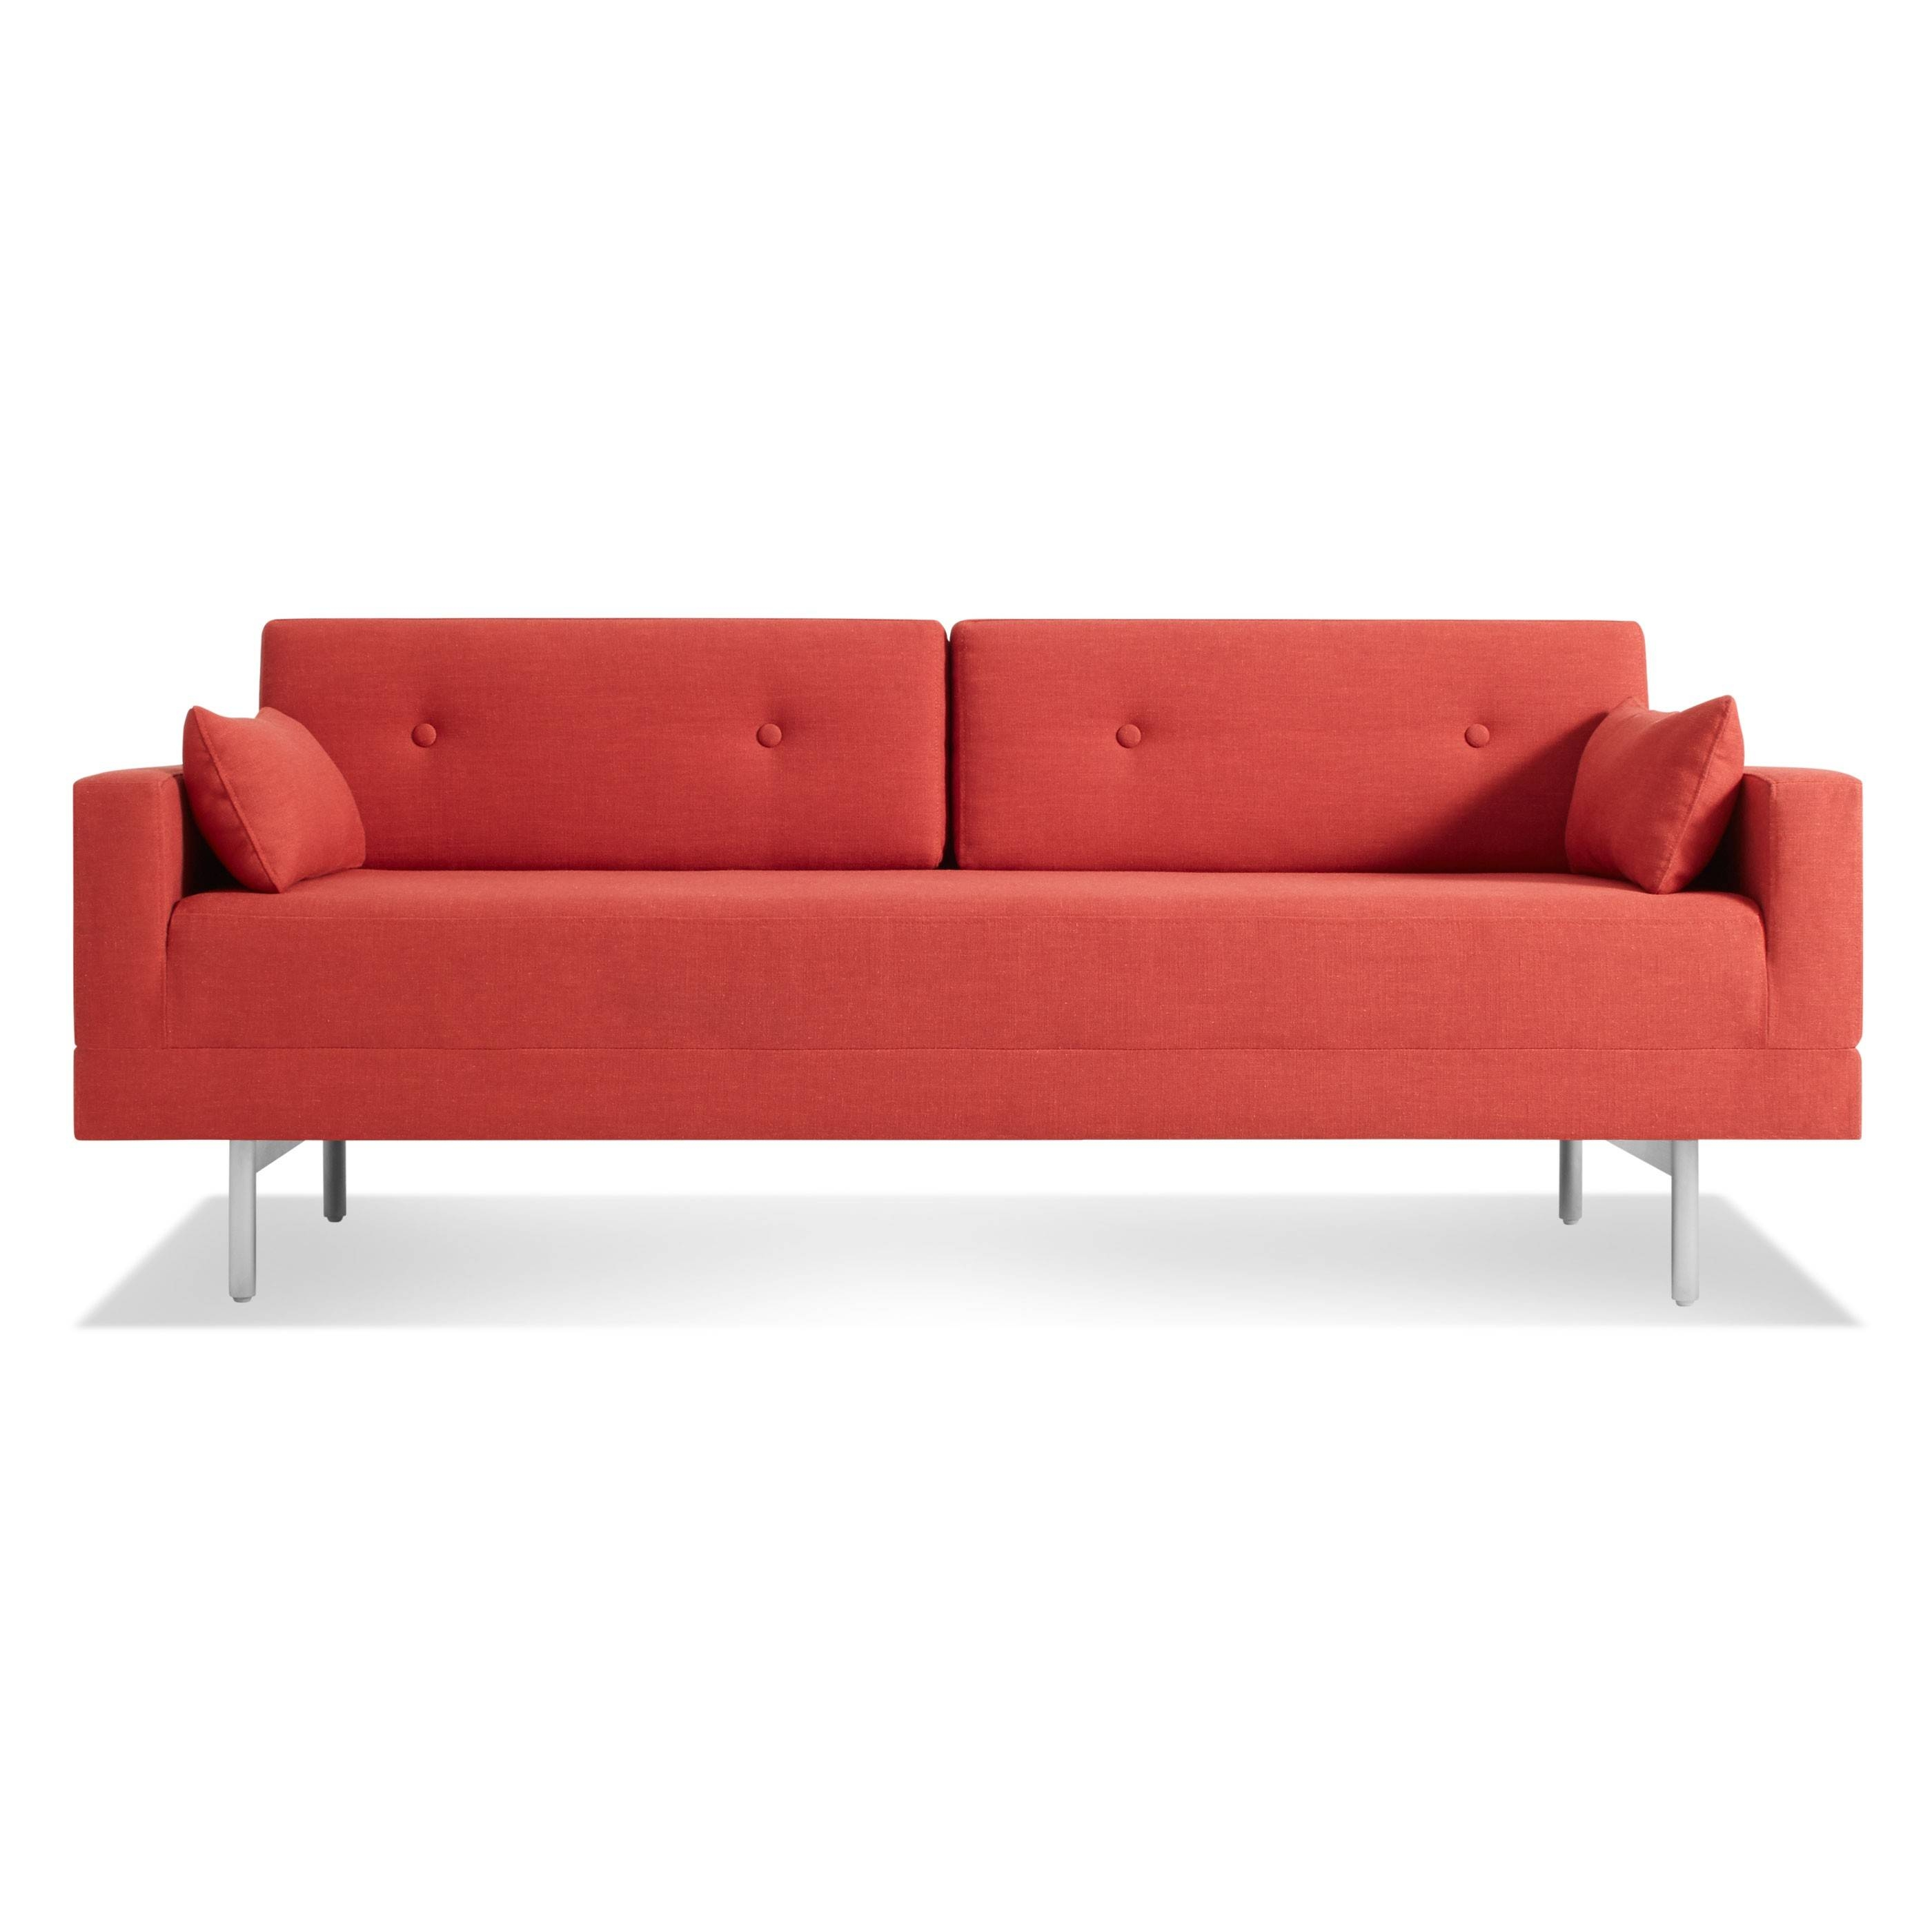 Sleeper Sofa – Diplomat Convertible Sofa | Blu Dot Intended For Sleeper Sofas (View 10 of 15)